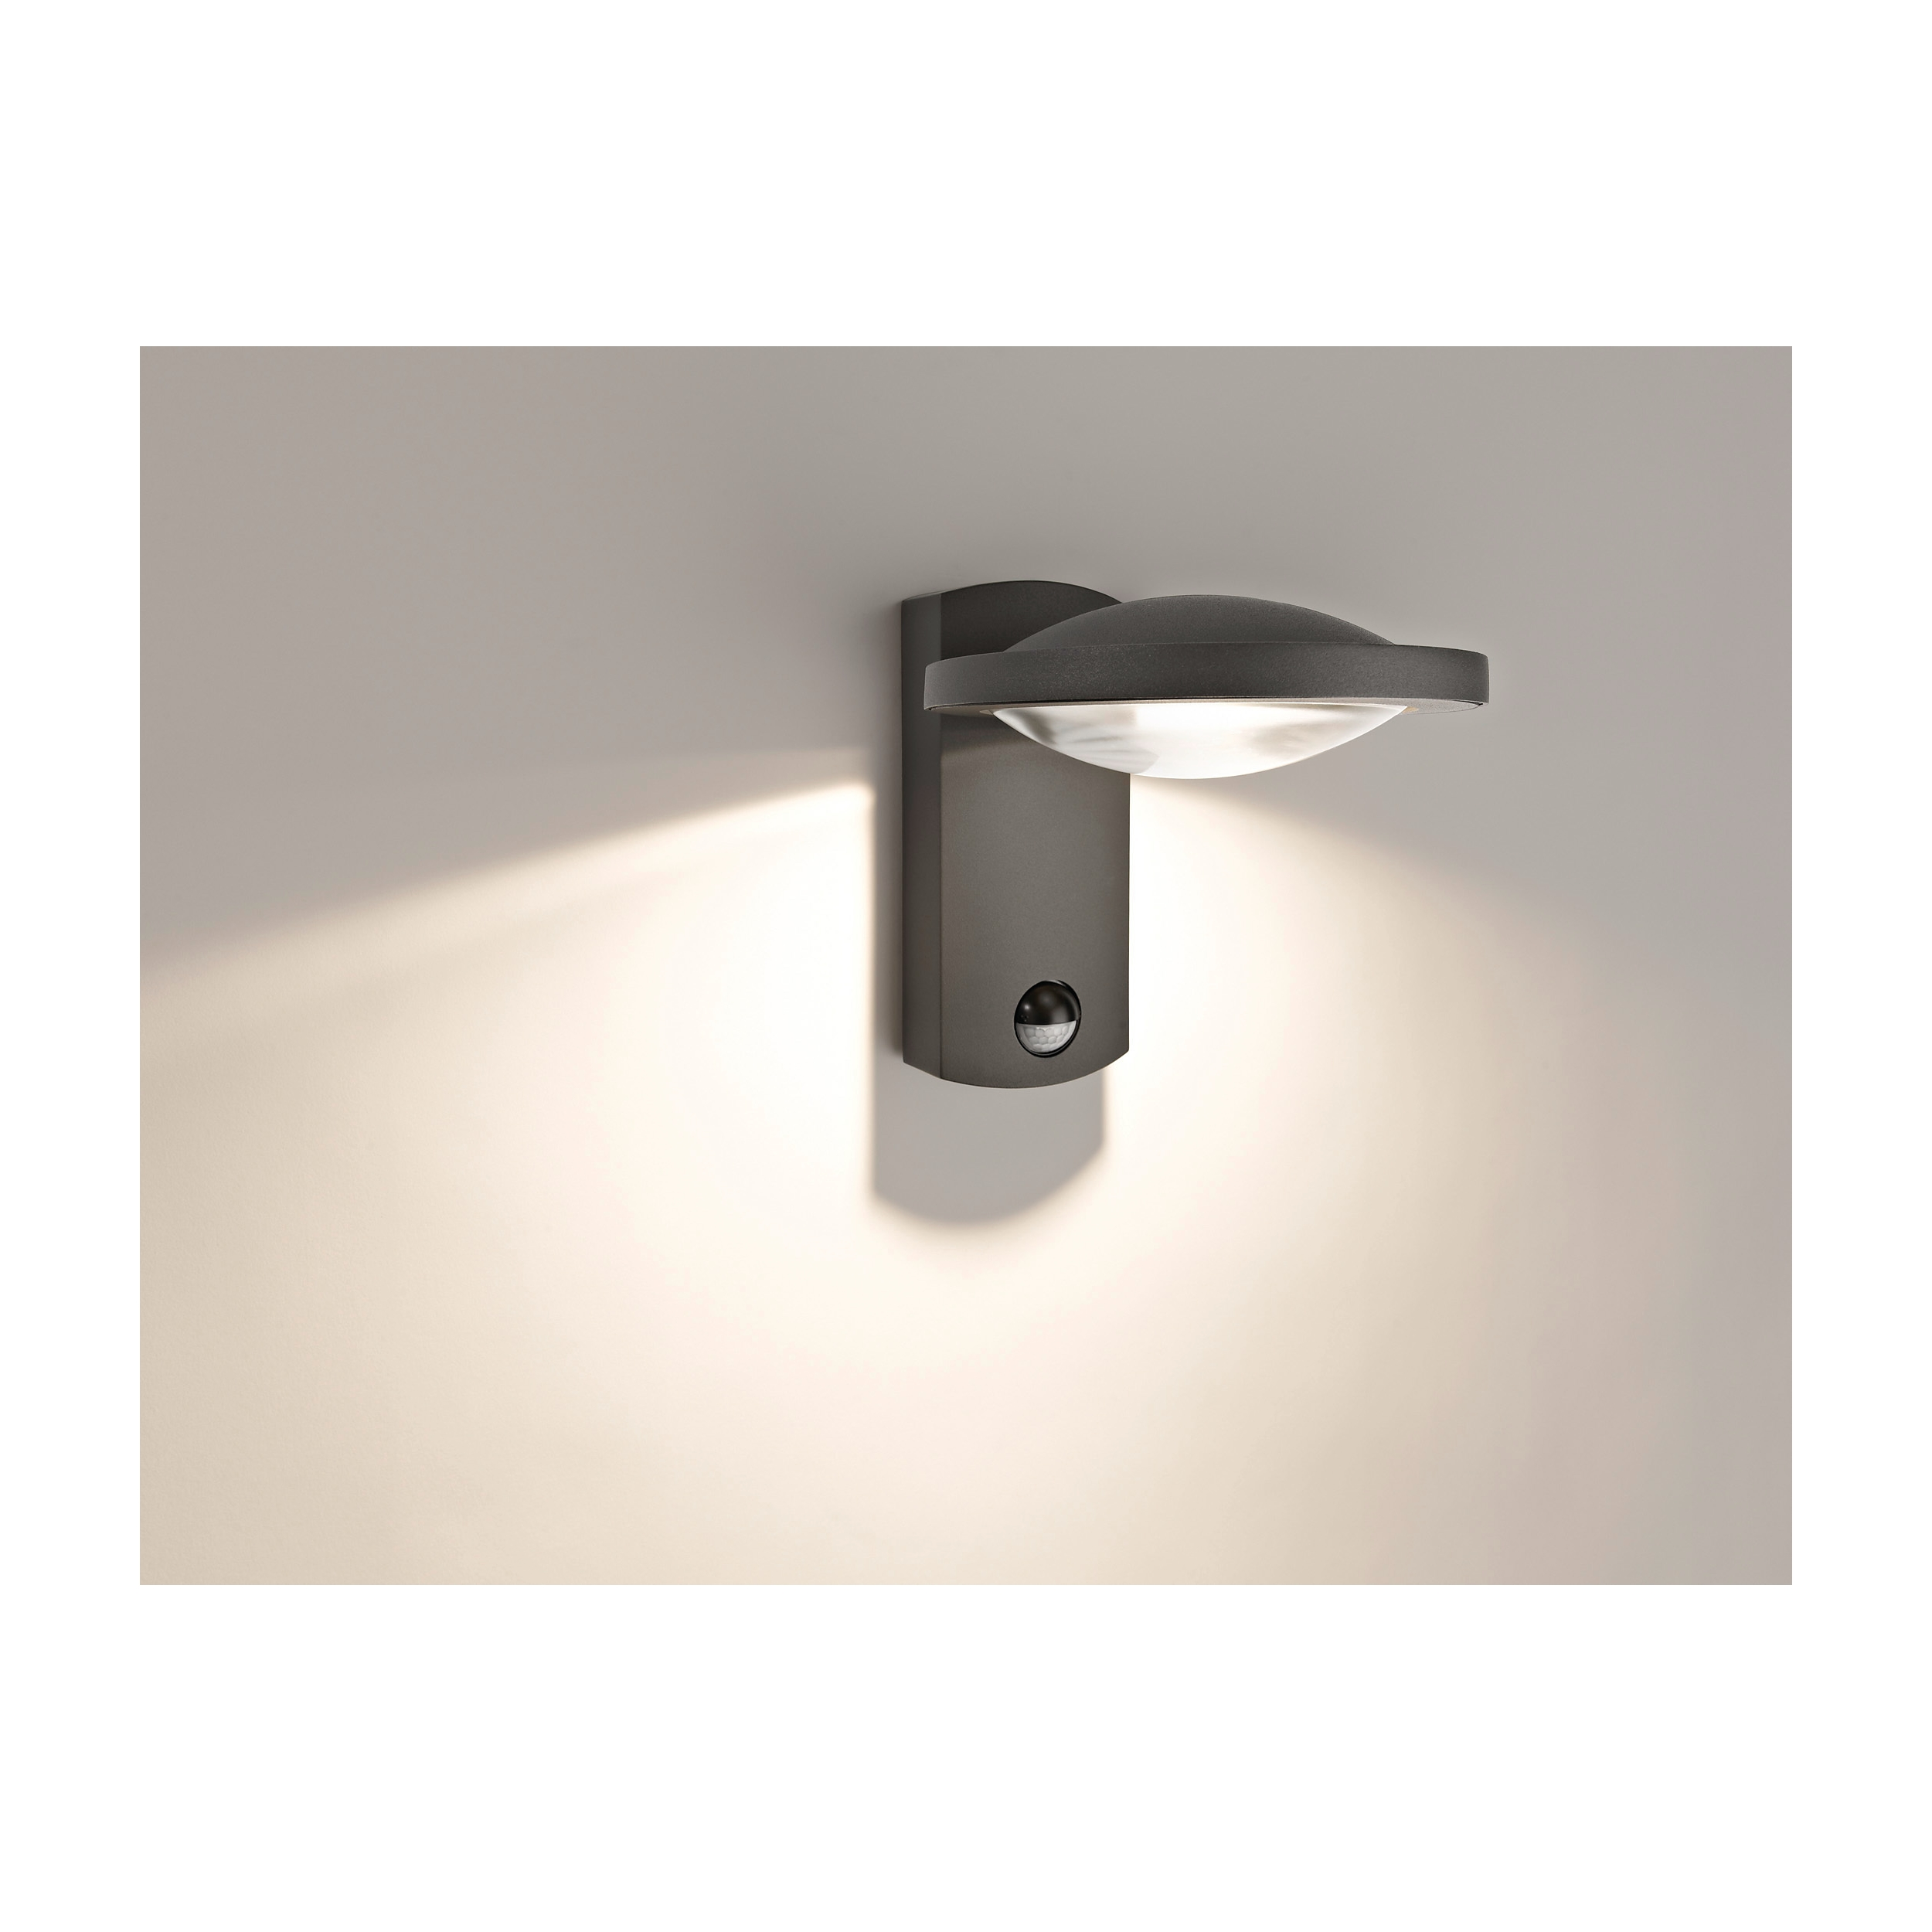 Philips ledino applique murale ext rieur moderne lampe led for Applique murale electrique exterieure led en aluminium hydro